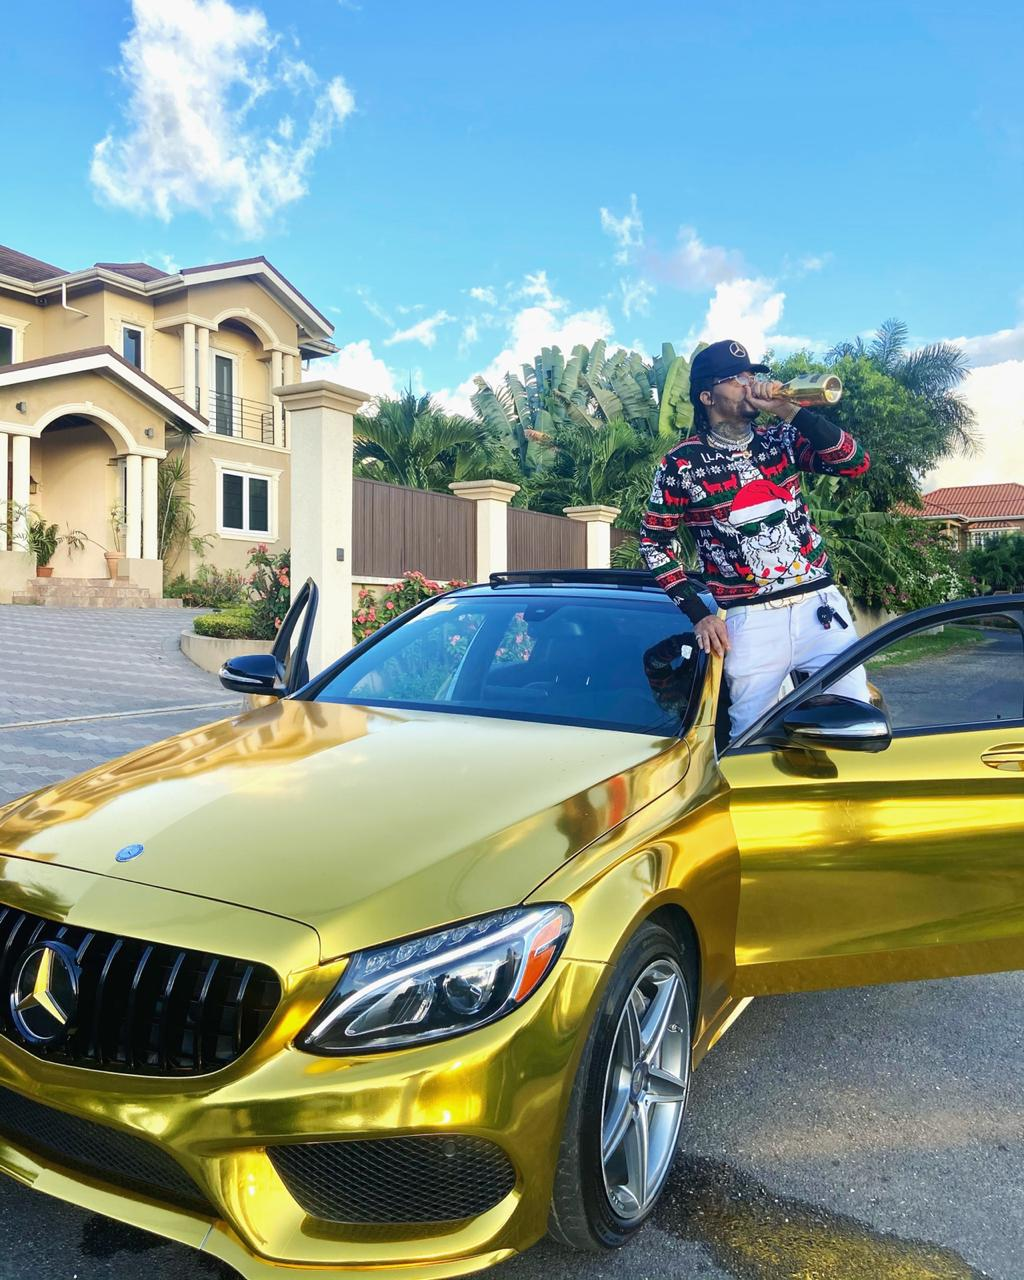 Gold Gad flexes with US$100,000 gold Benz